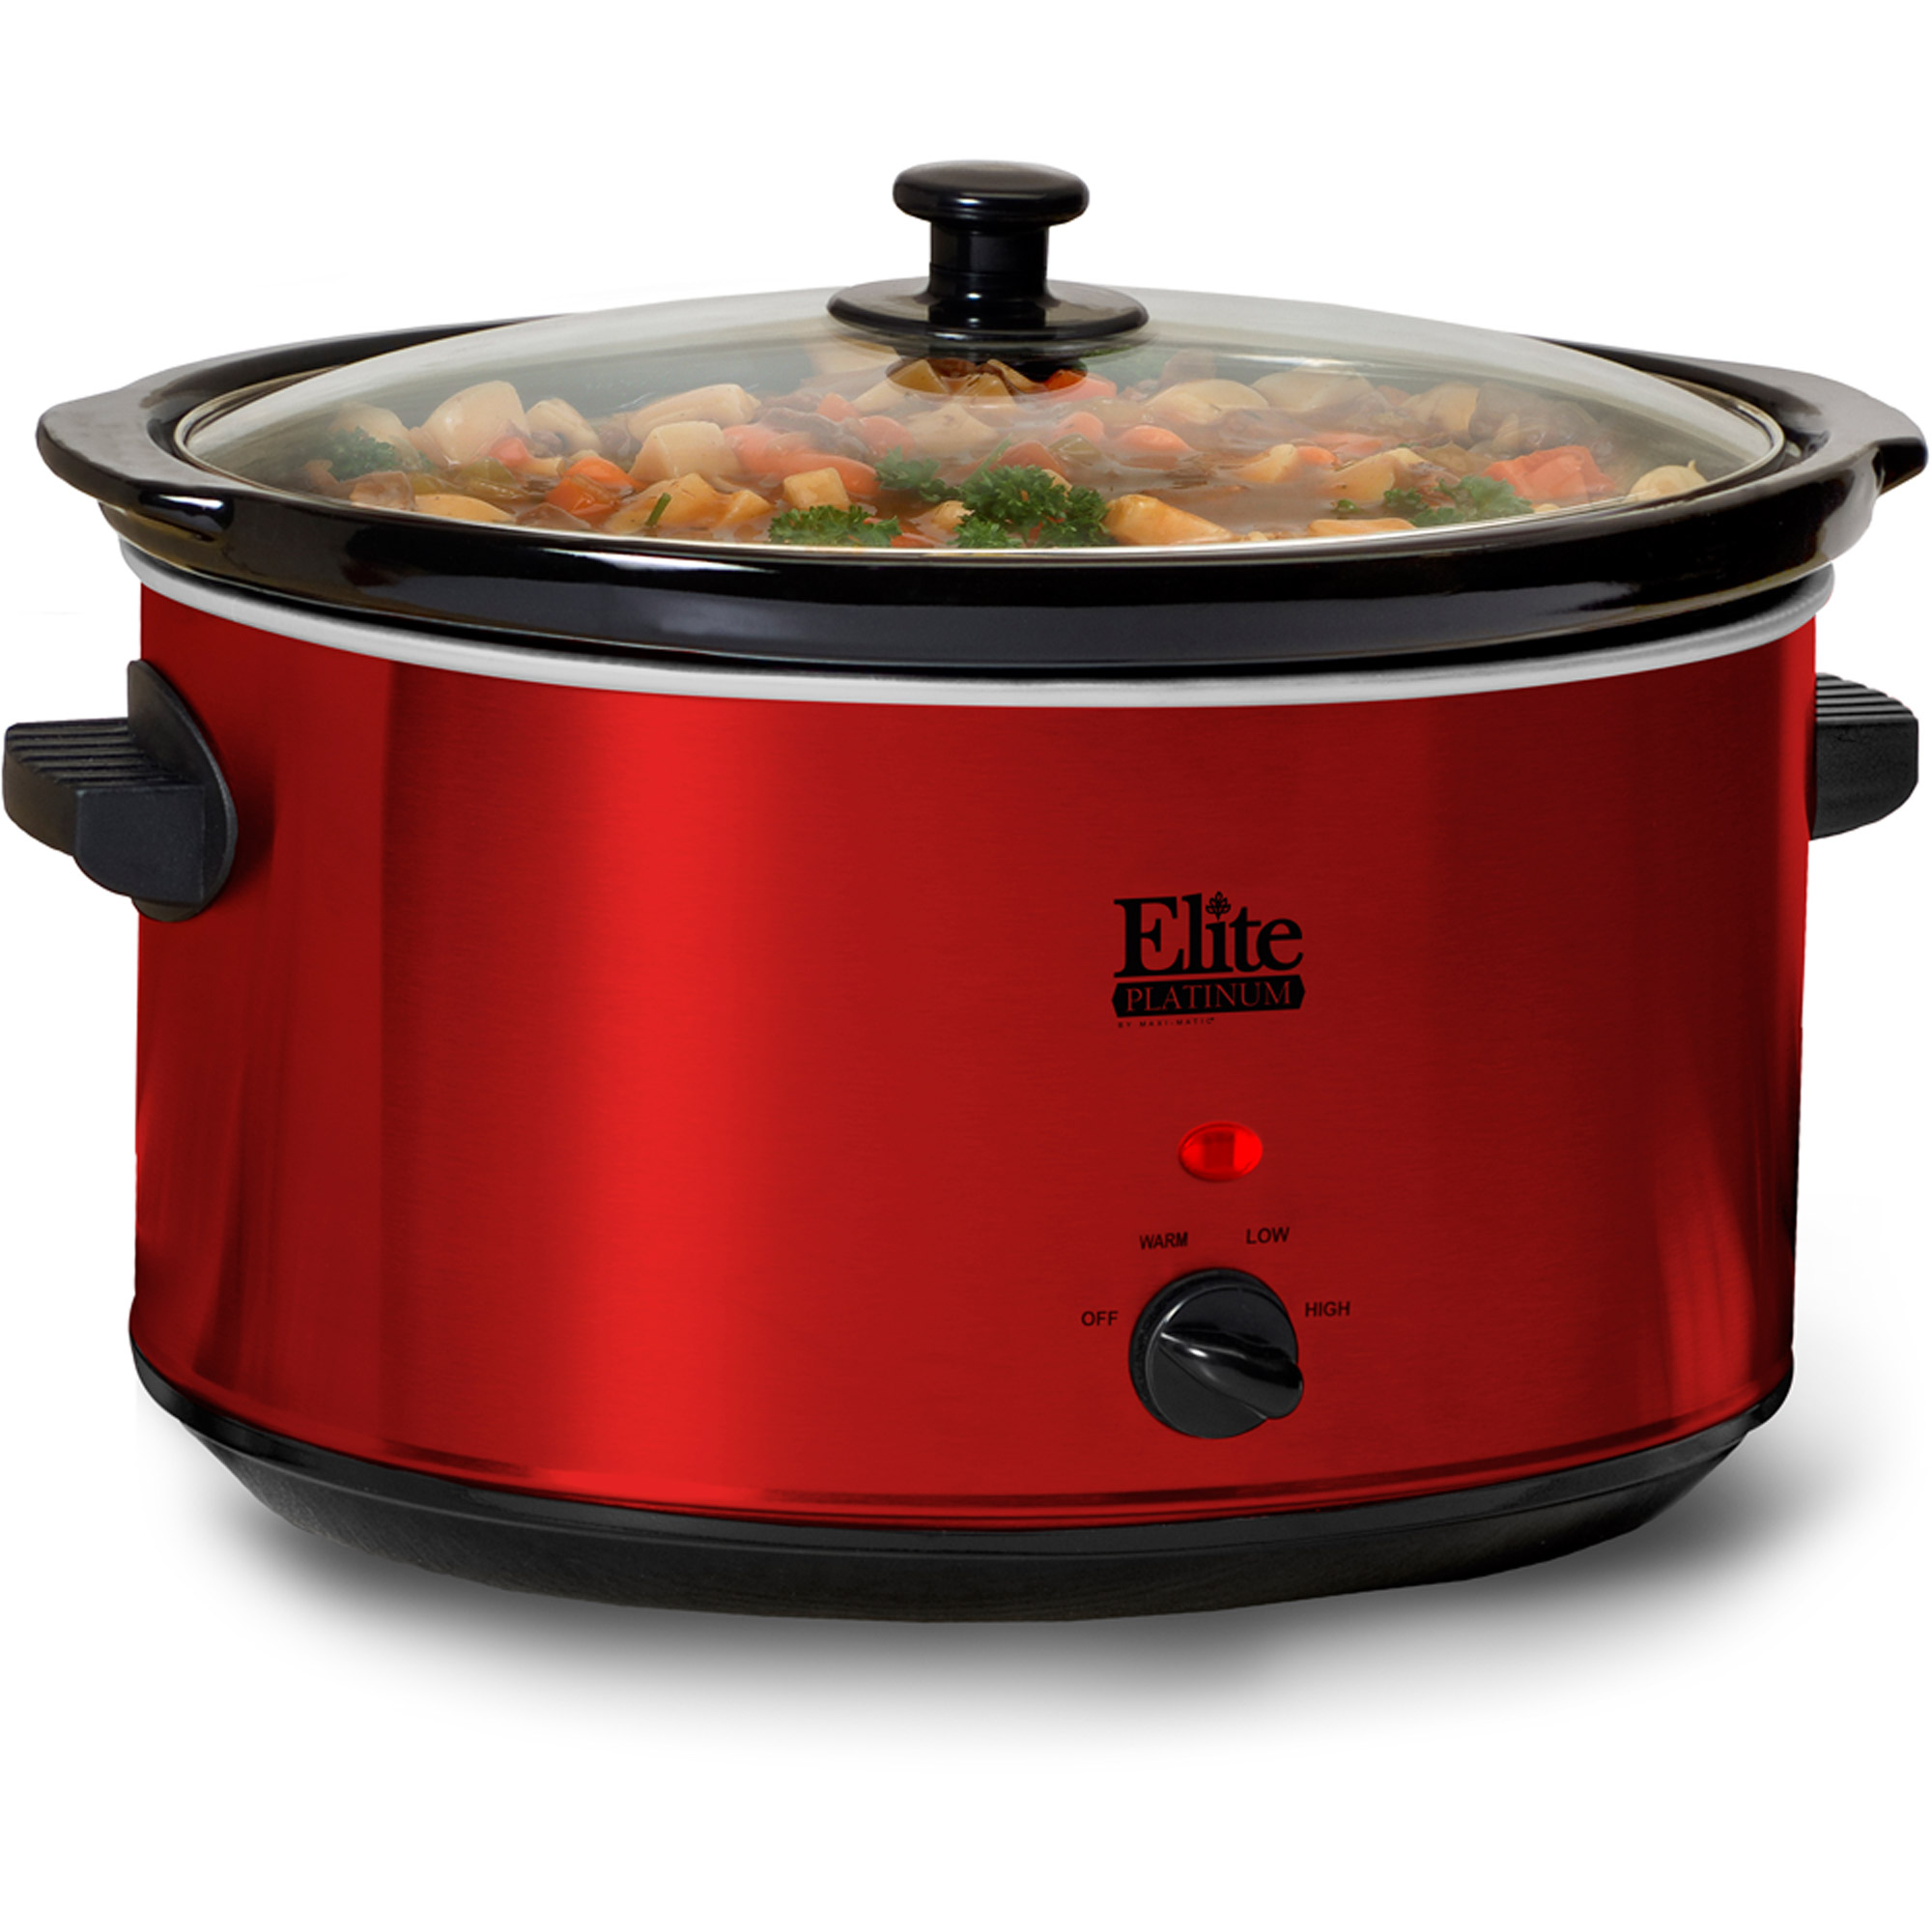 Elite Platinum MST-900R 8.5 qt Stainless Steel Slow Cooker, Red